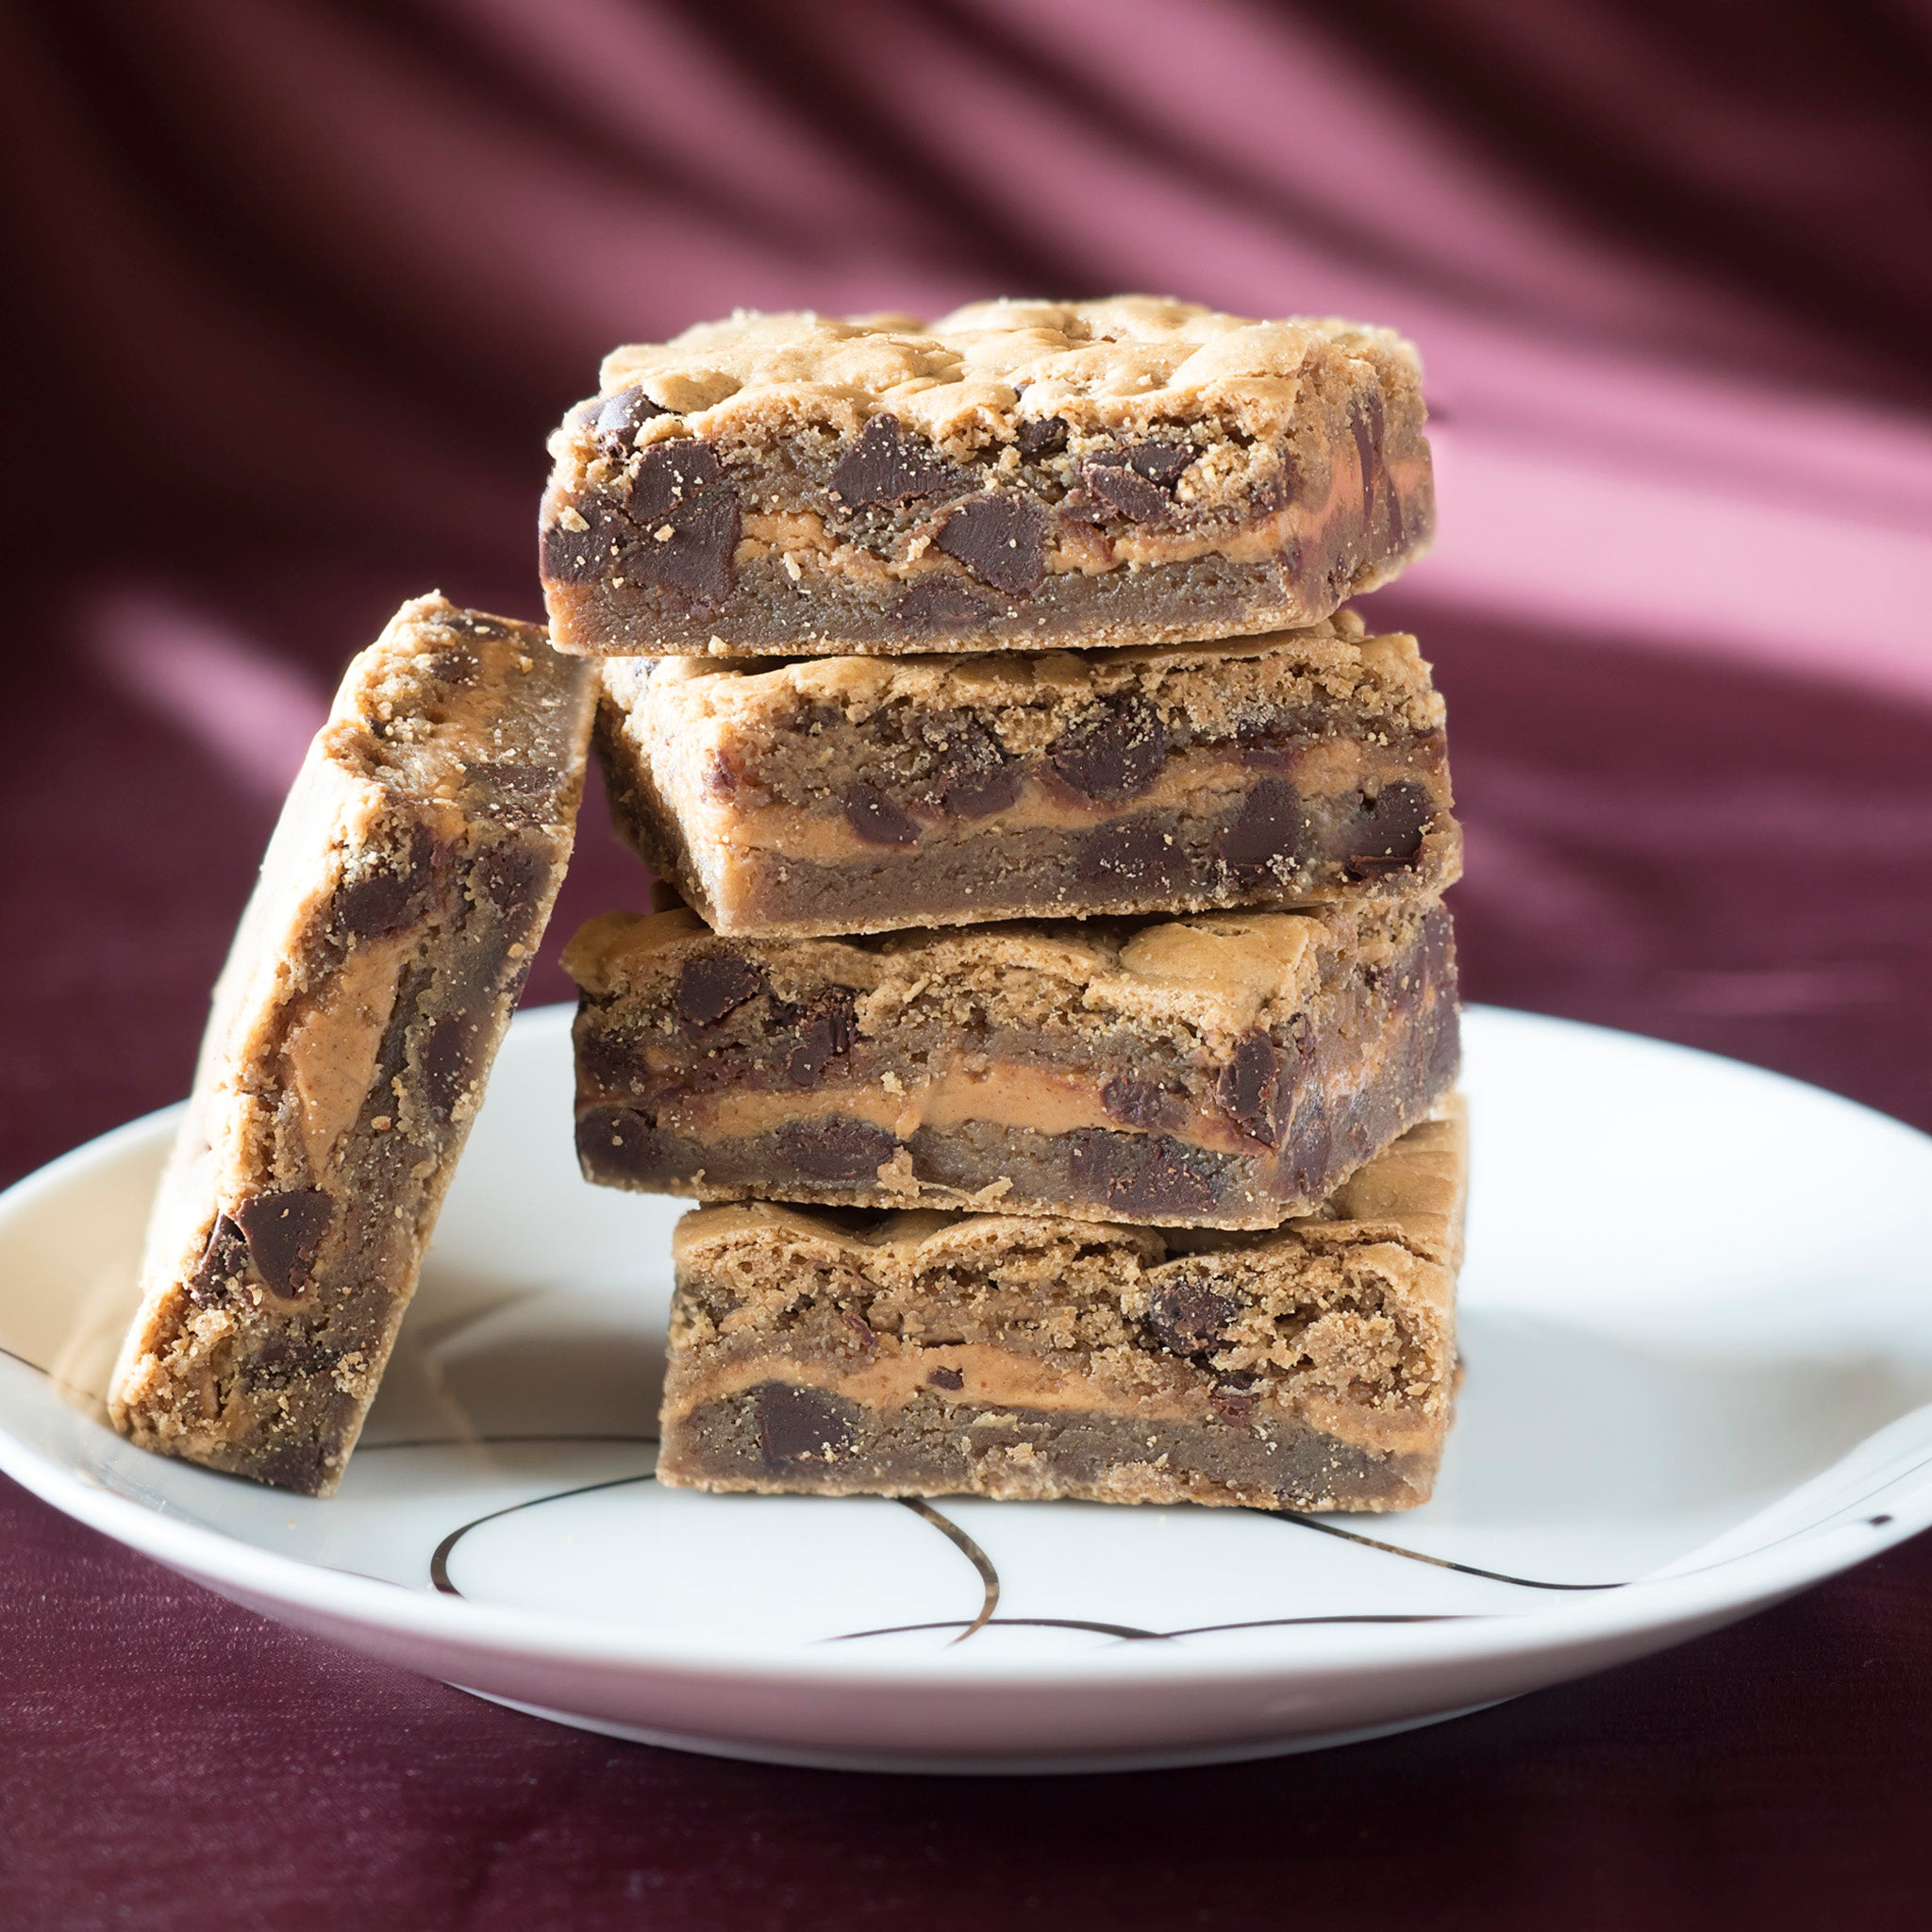 Vegan Chocolate Peanut Butter Blondie